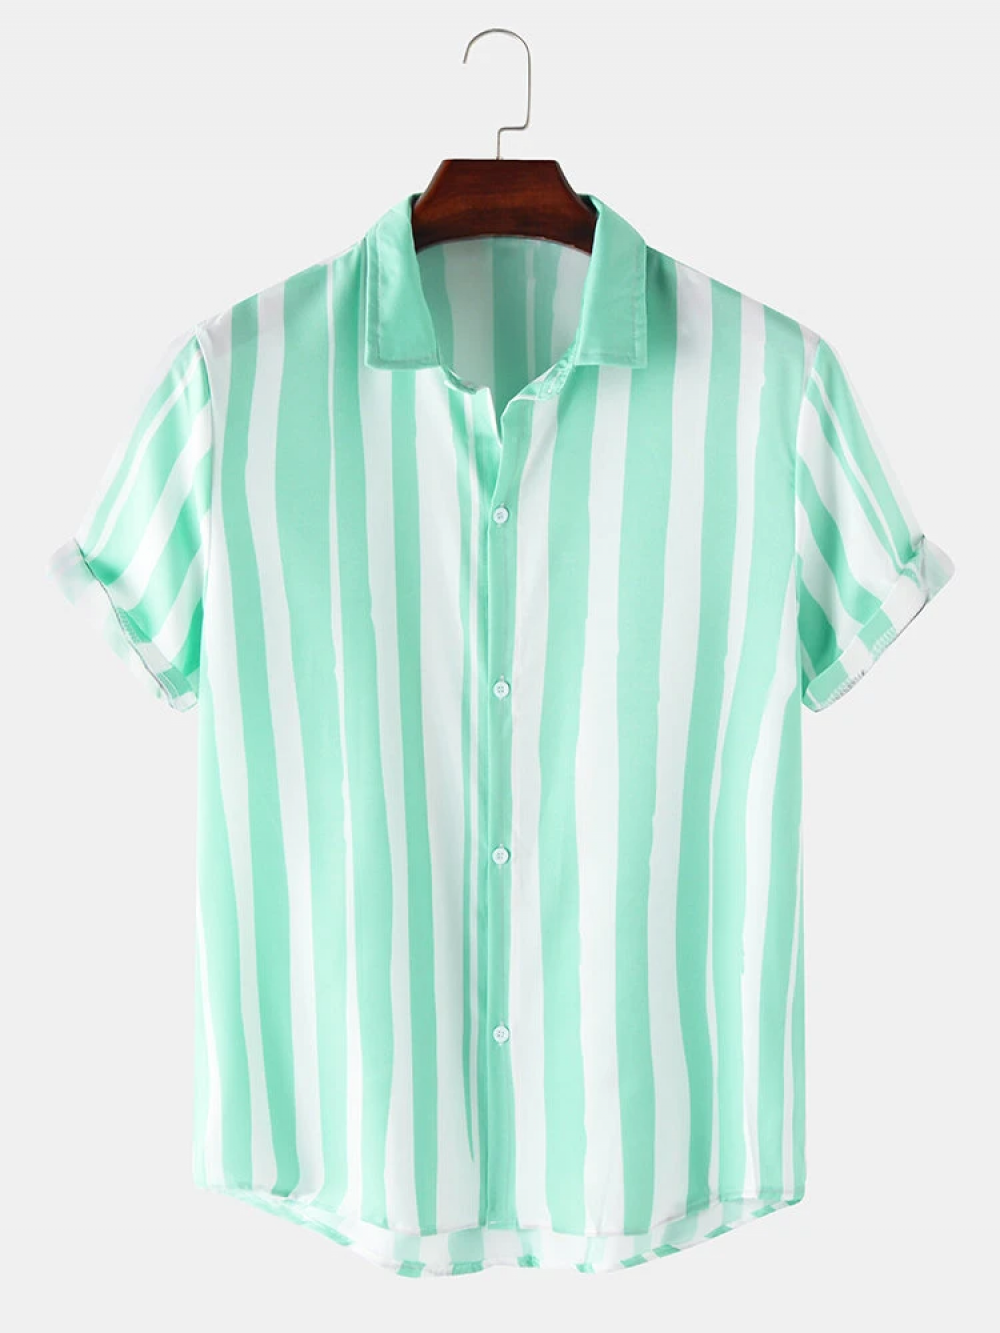 Good Looking Green color Striped ed Short Sleeve Shirt